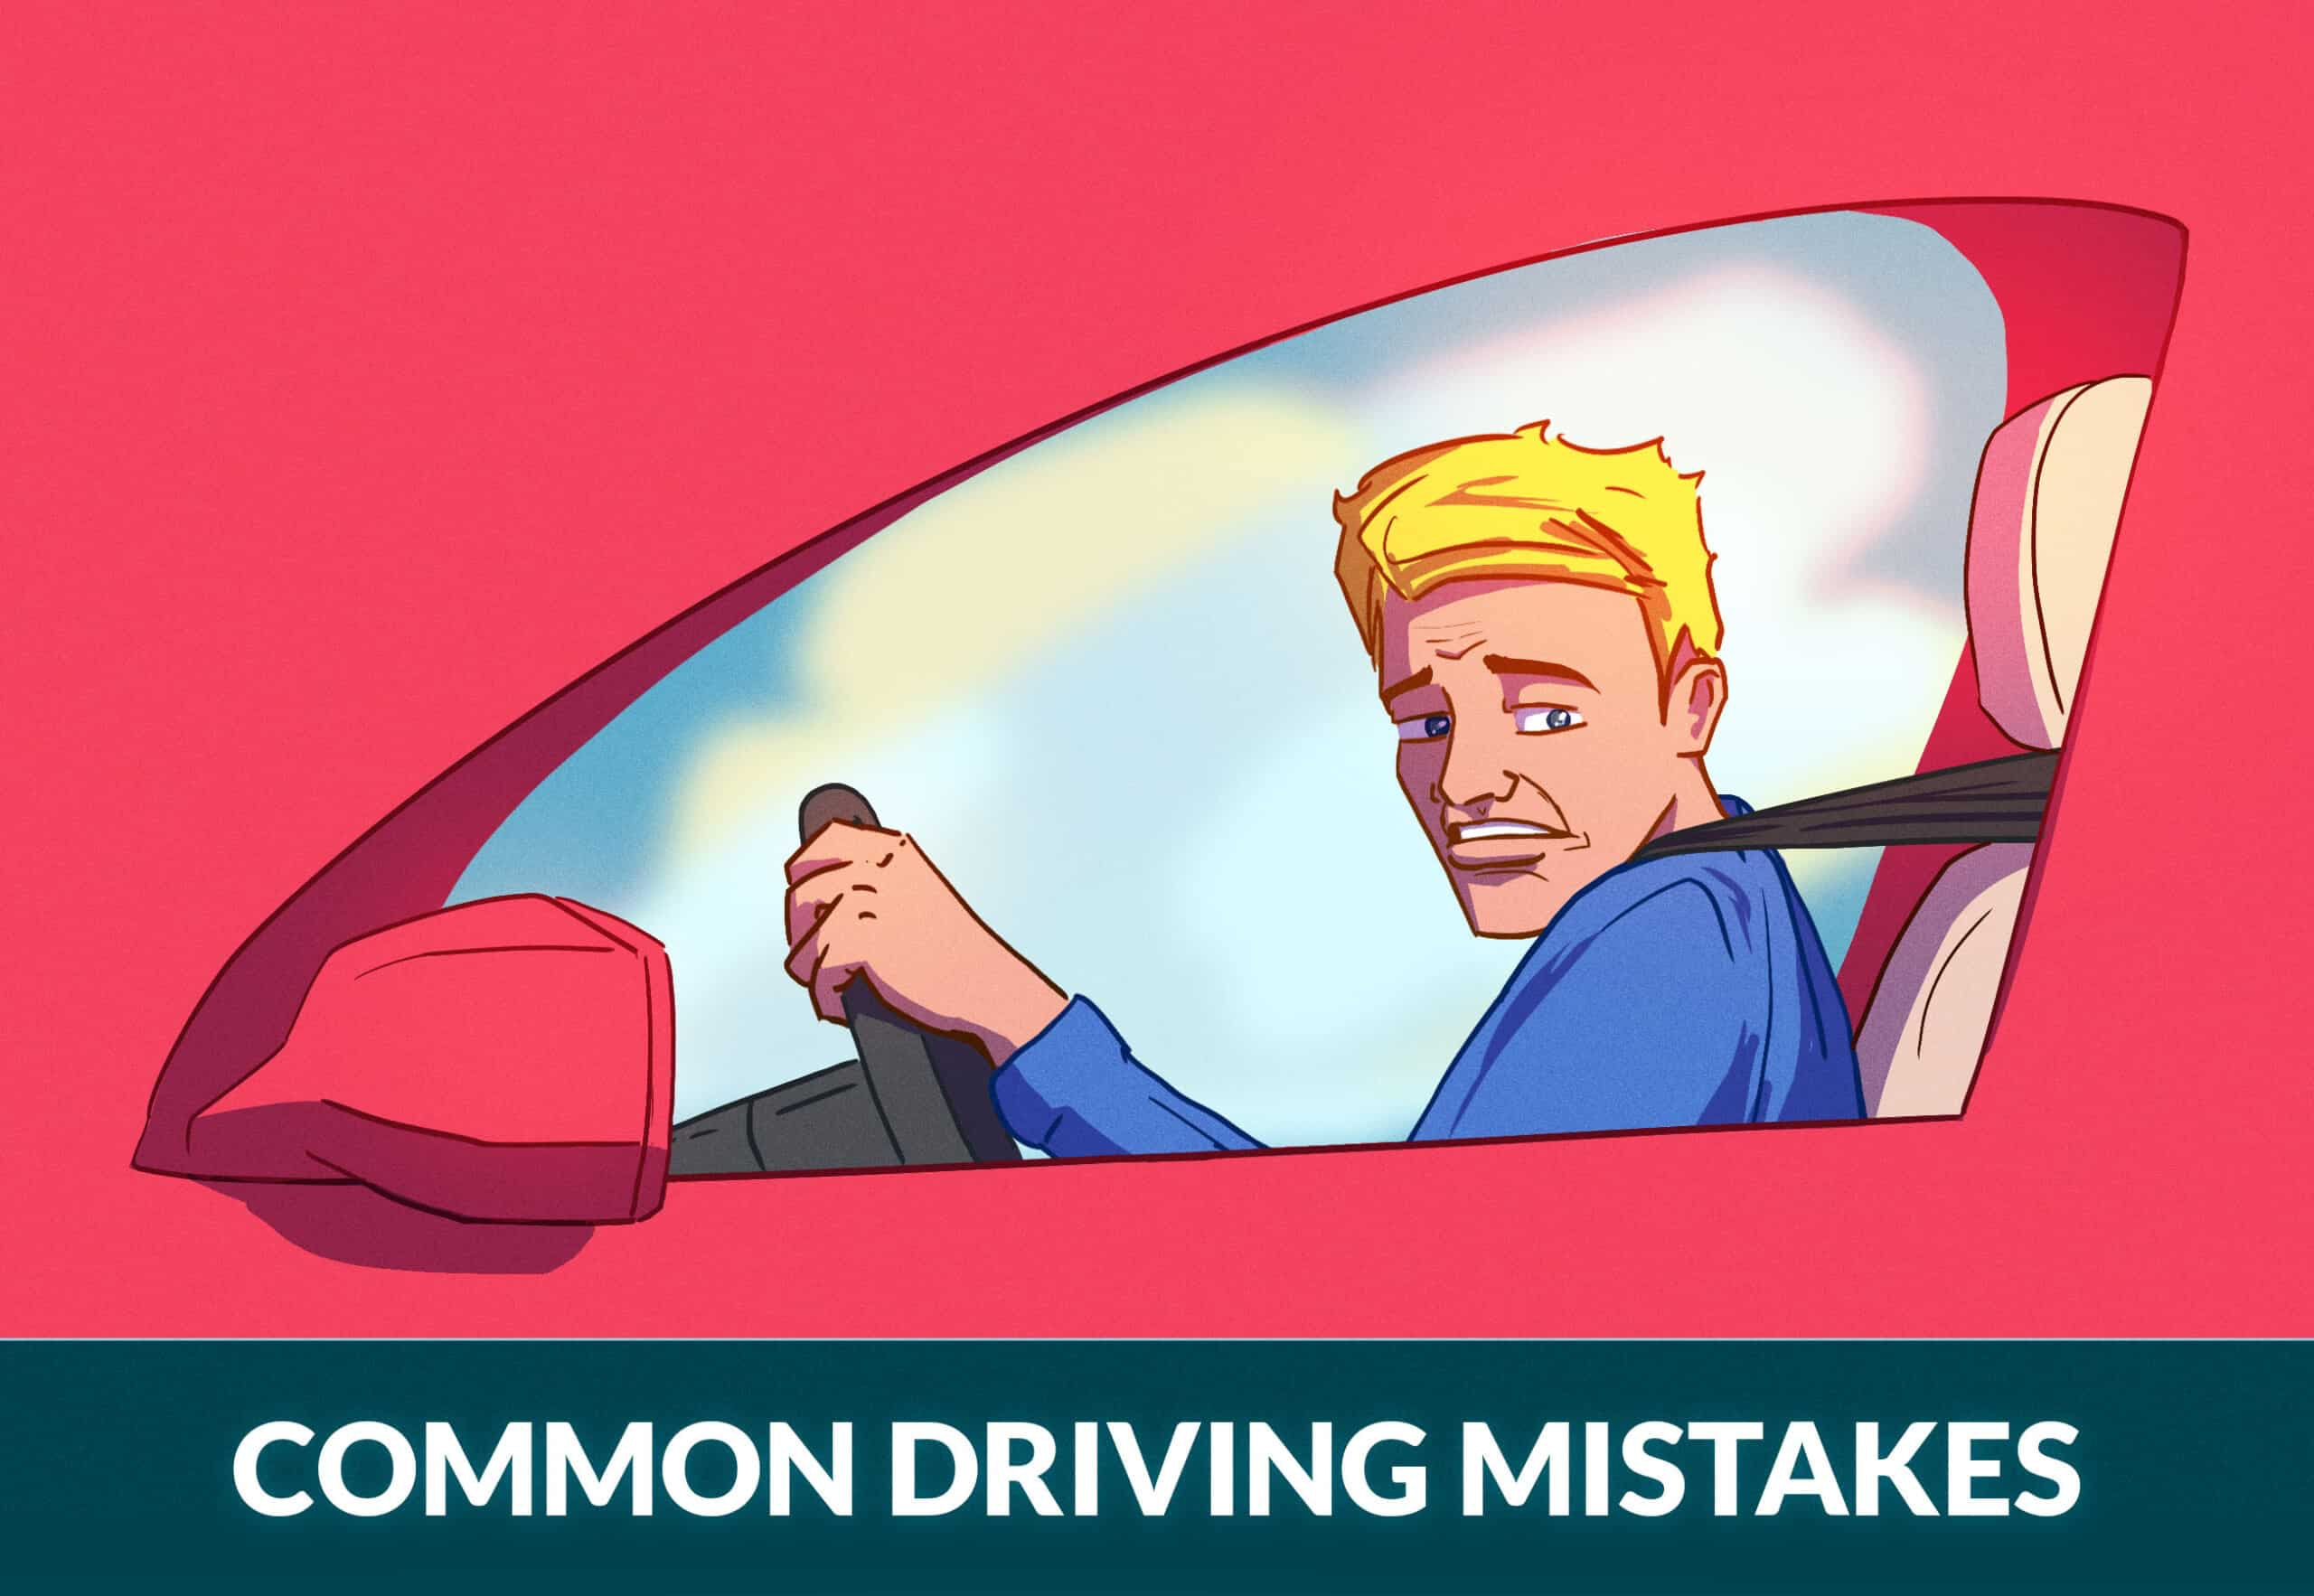 COMMON DRIVING MISTAKES